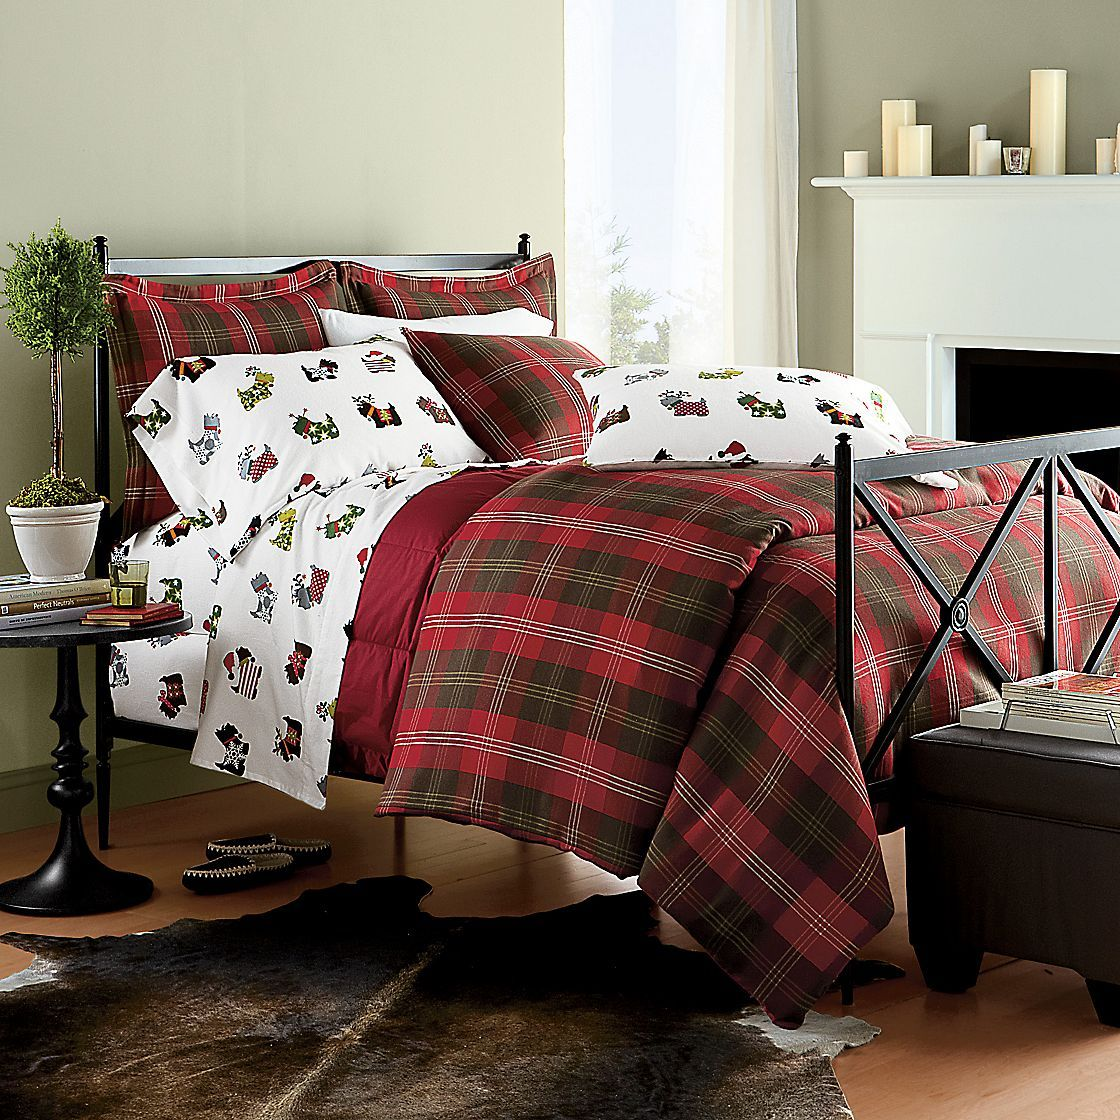 Scottie Flannel Bedding  The Company Store  Jolly uOllyday